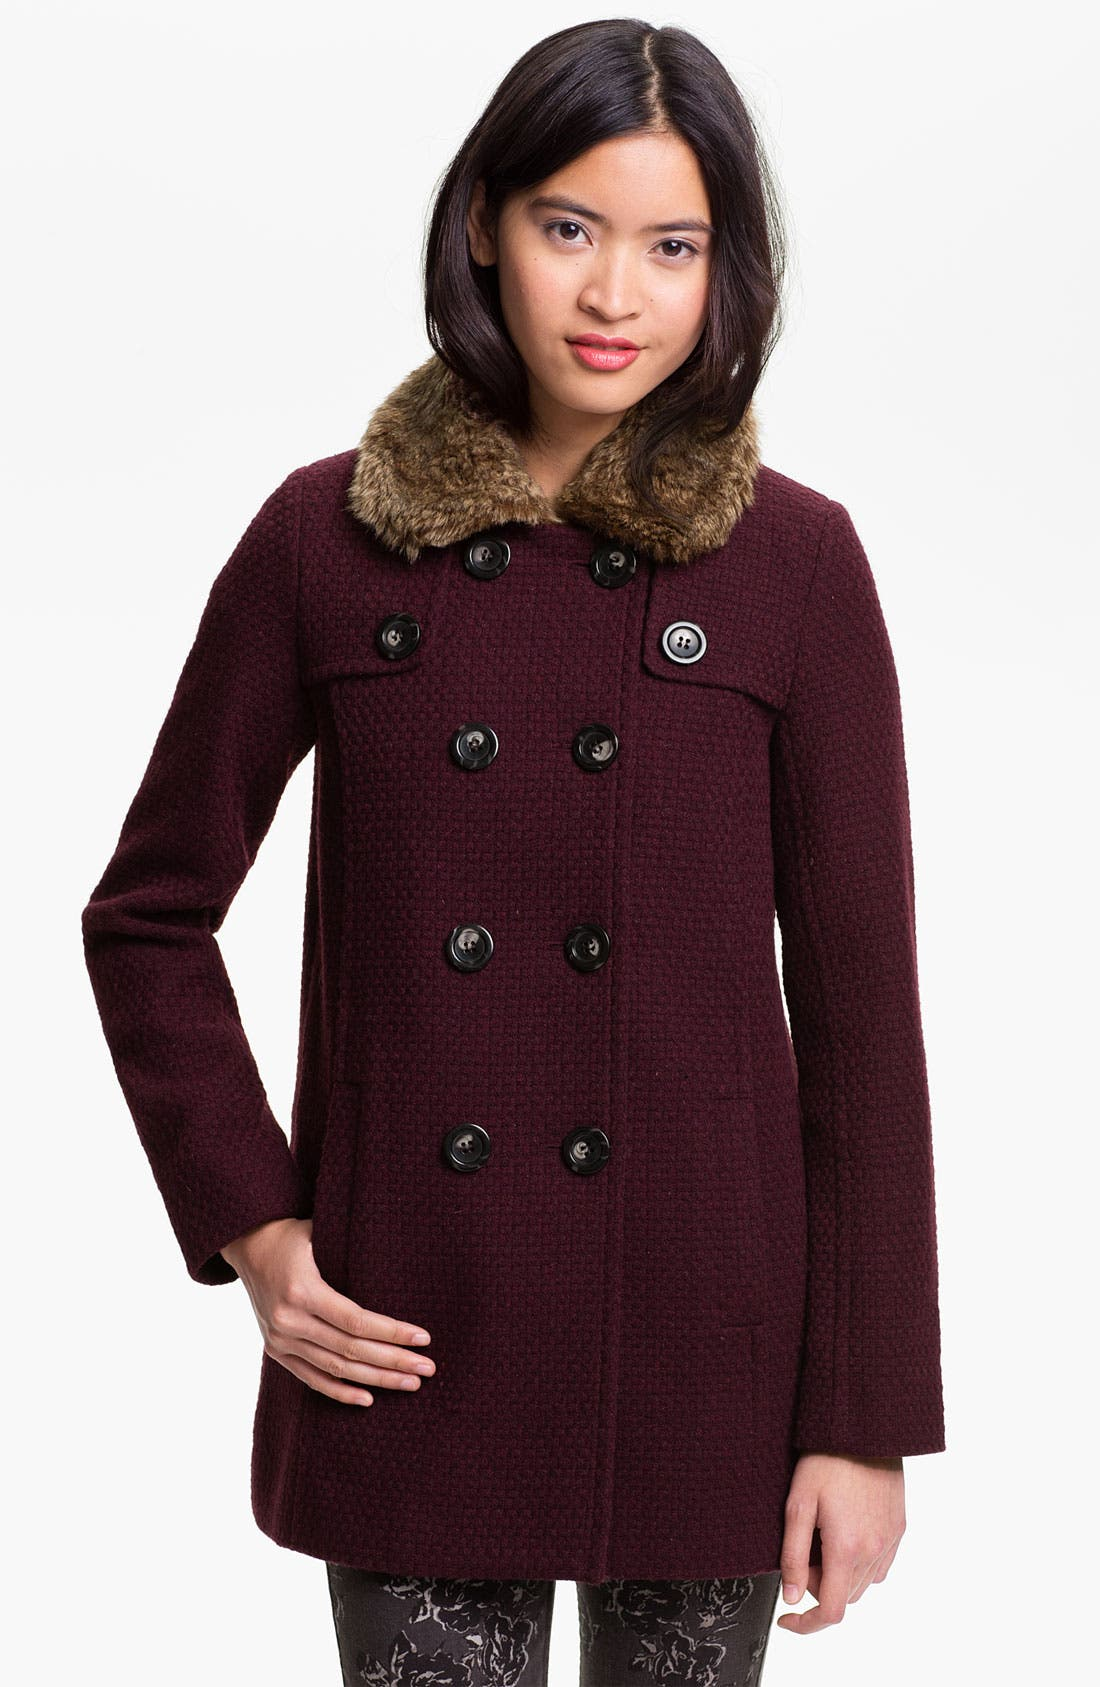 Alternate Image 1 Selected - BP. Faux Fur Collar Coat (Juniors)